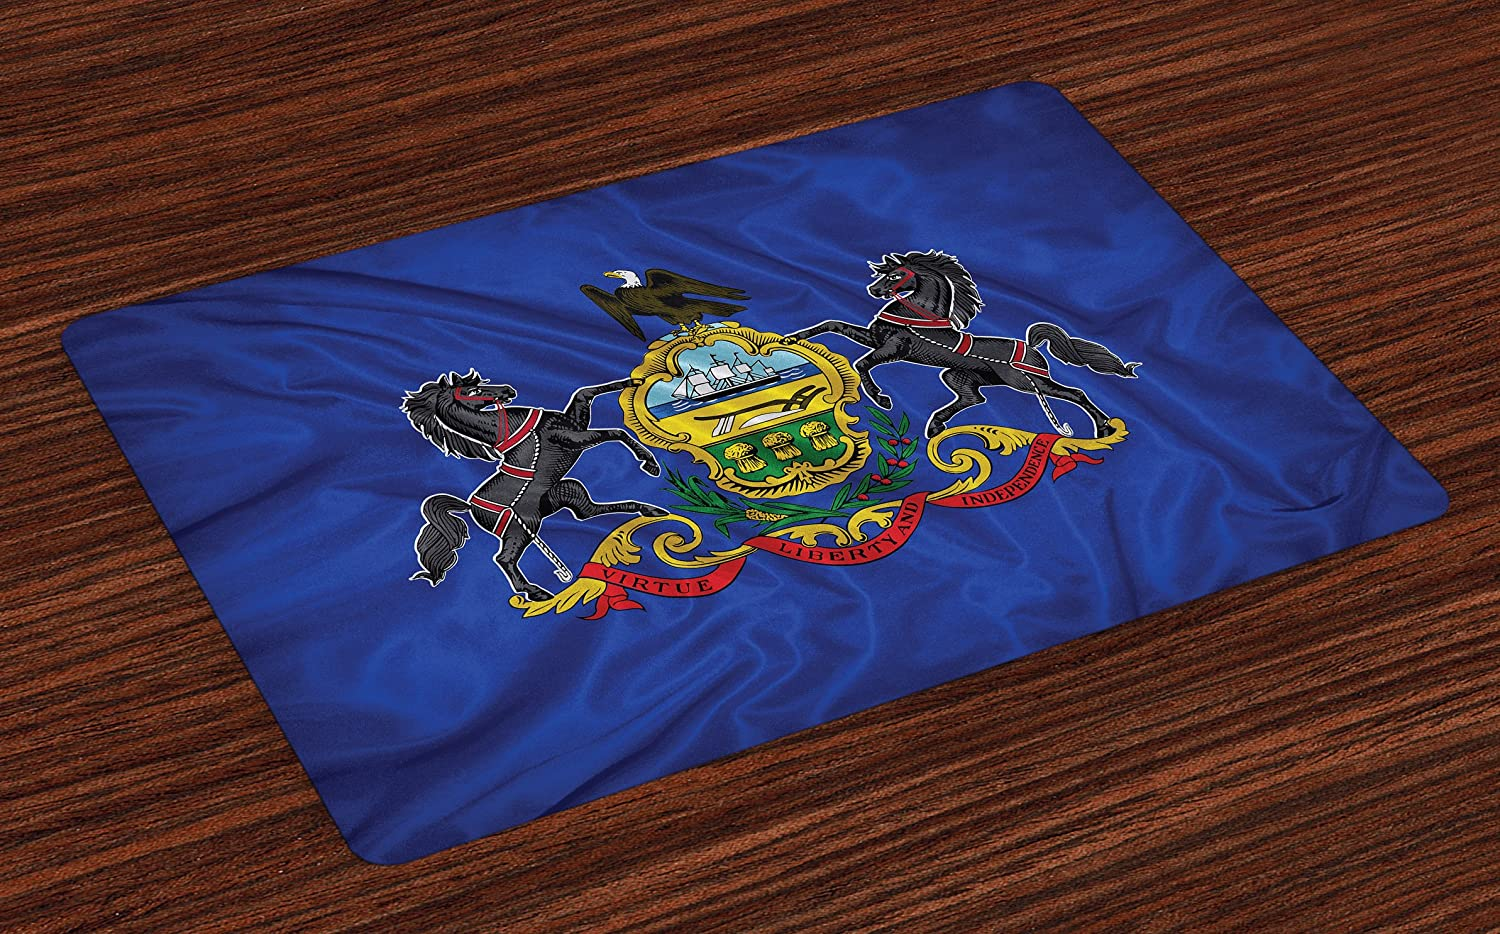 Lunarable American Place Mats Set of 4, Pennsylvania Flag Sheaves of Wheat State Coat of Arms Wavy Patriotic, Washable Fabric Placemats for Dining Room Kitchen Table Decor, Blue Multicolor